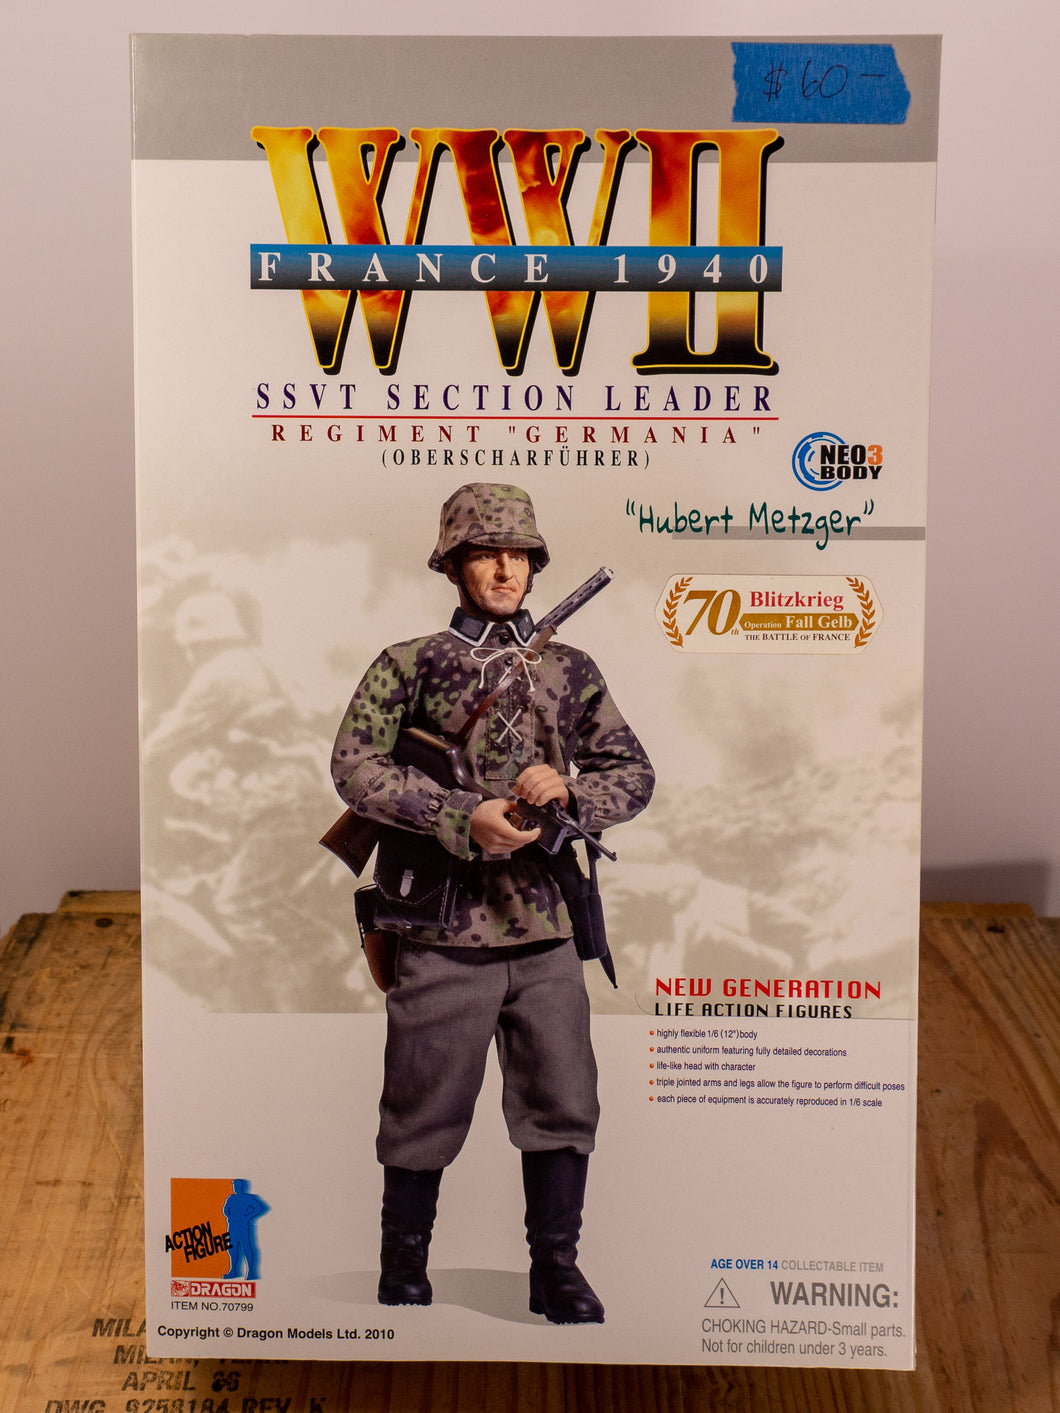 Dragon Action Figures WWII SSVT Section Leader